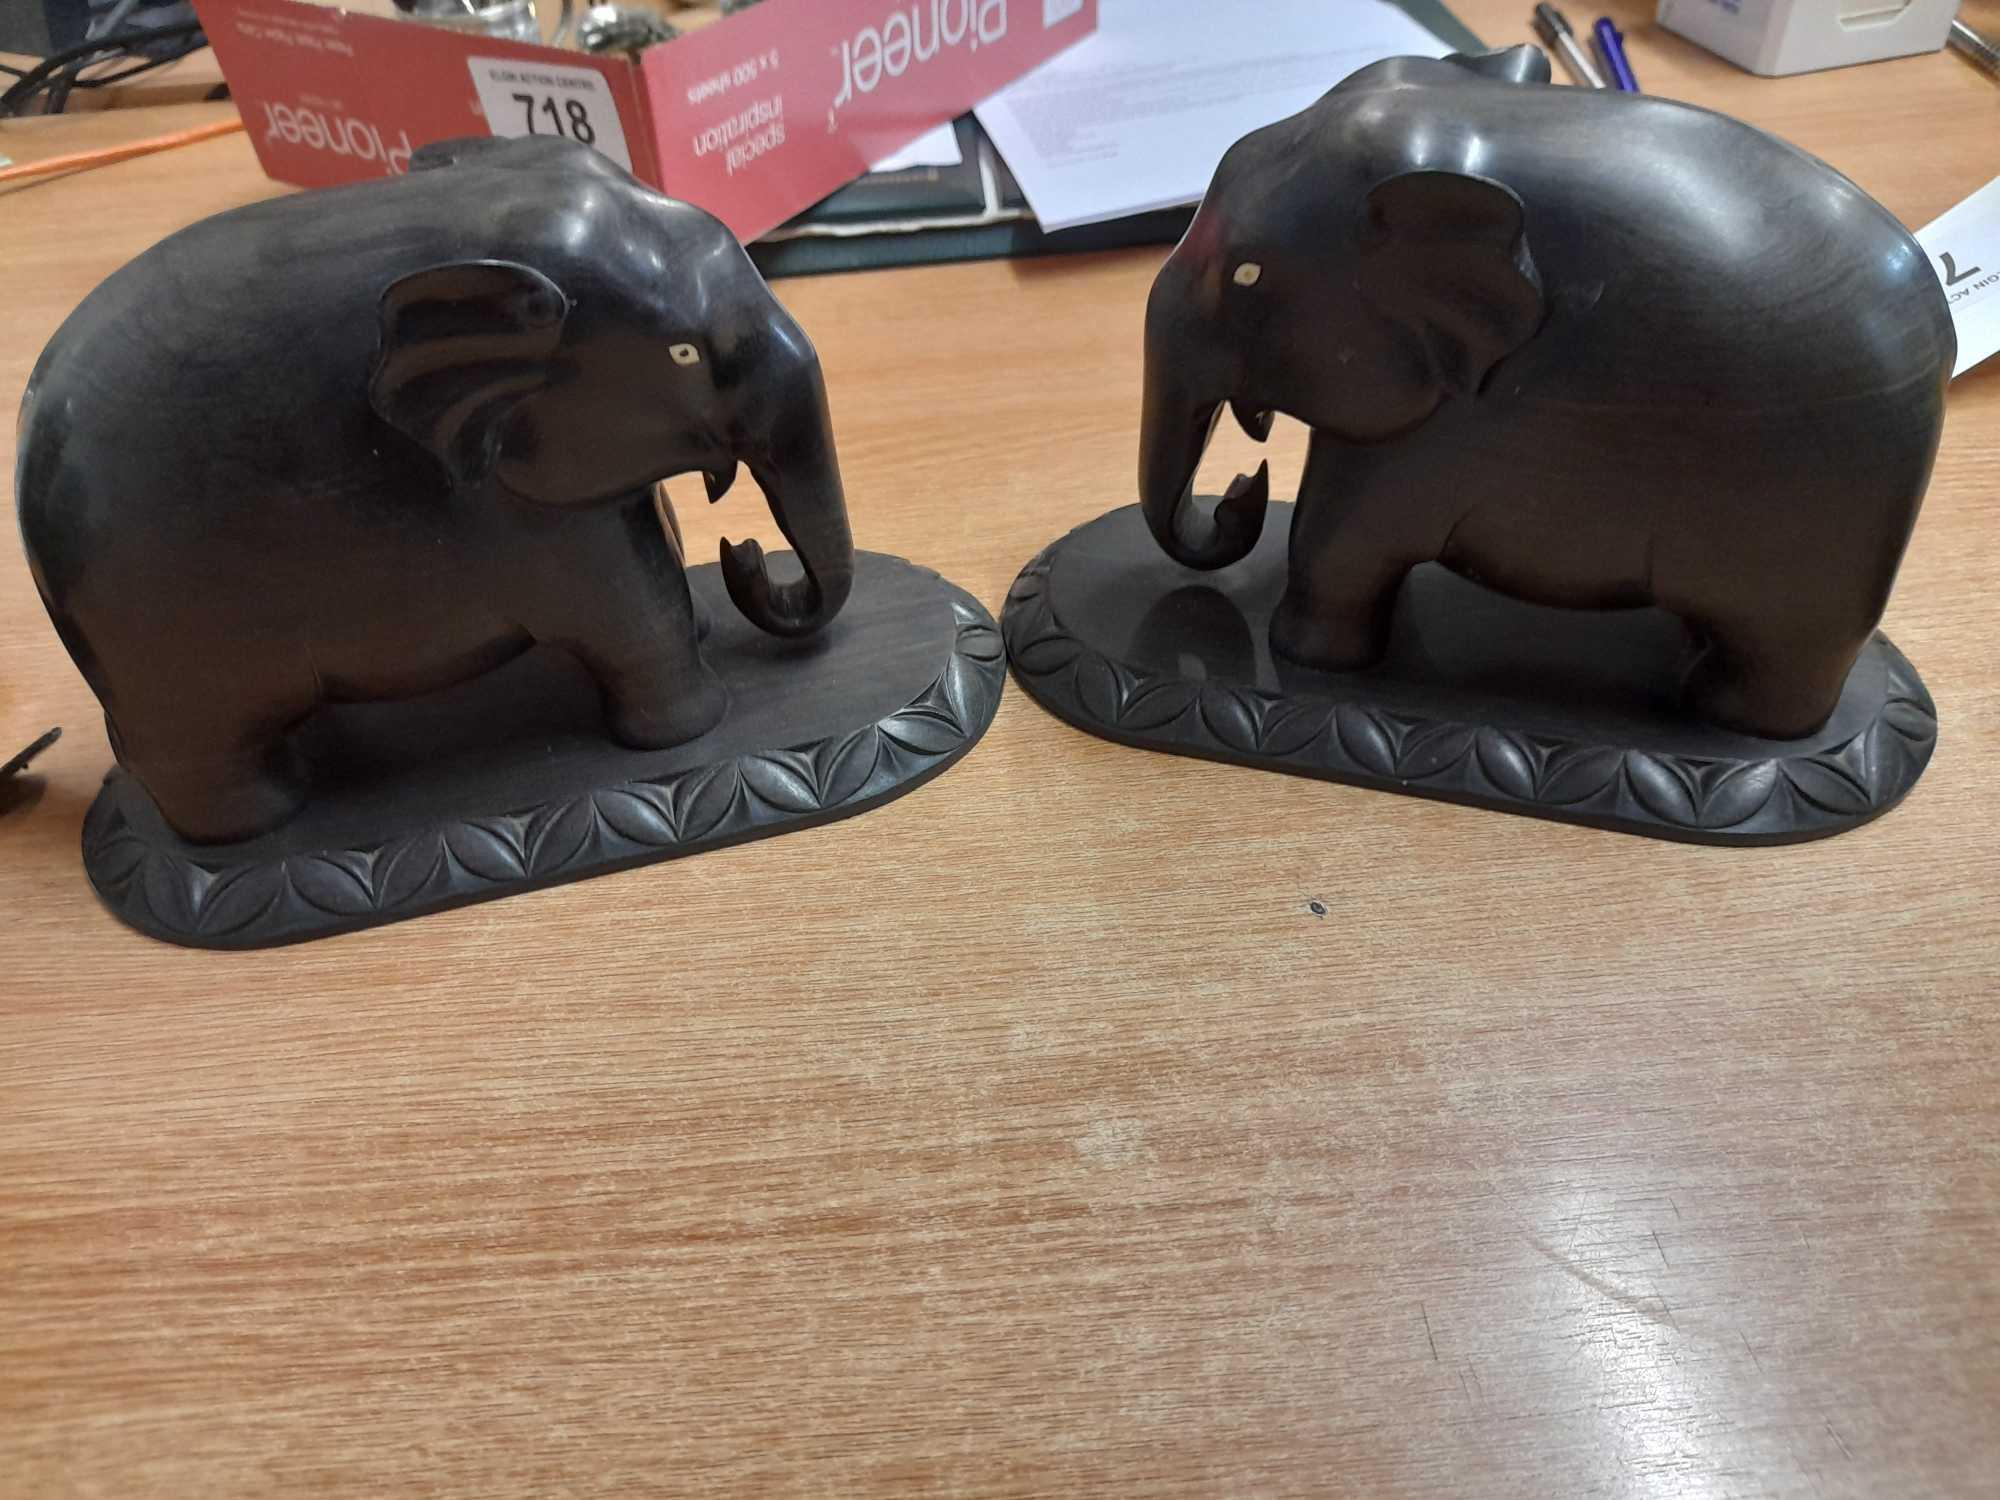 PAIR BOOKENDS & 2 ELEPHANTS (AF) - Image 3 of 4